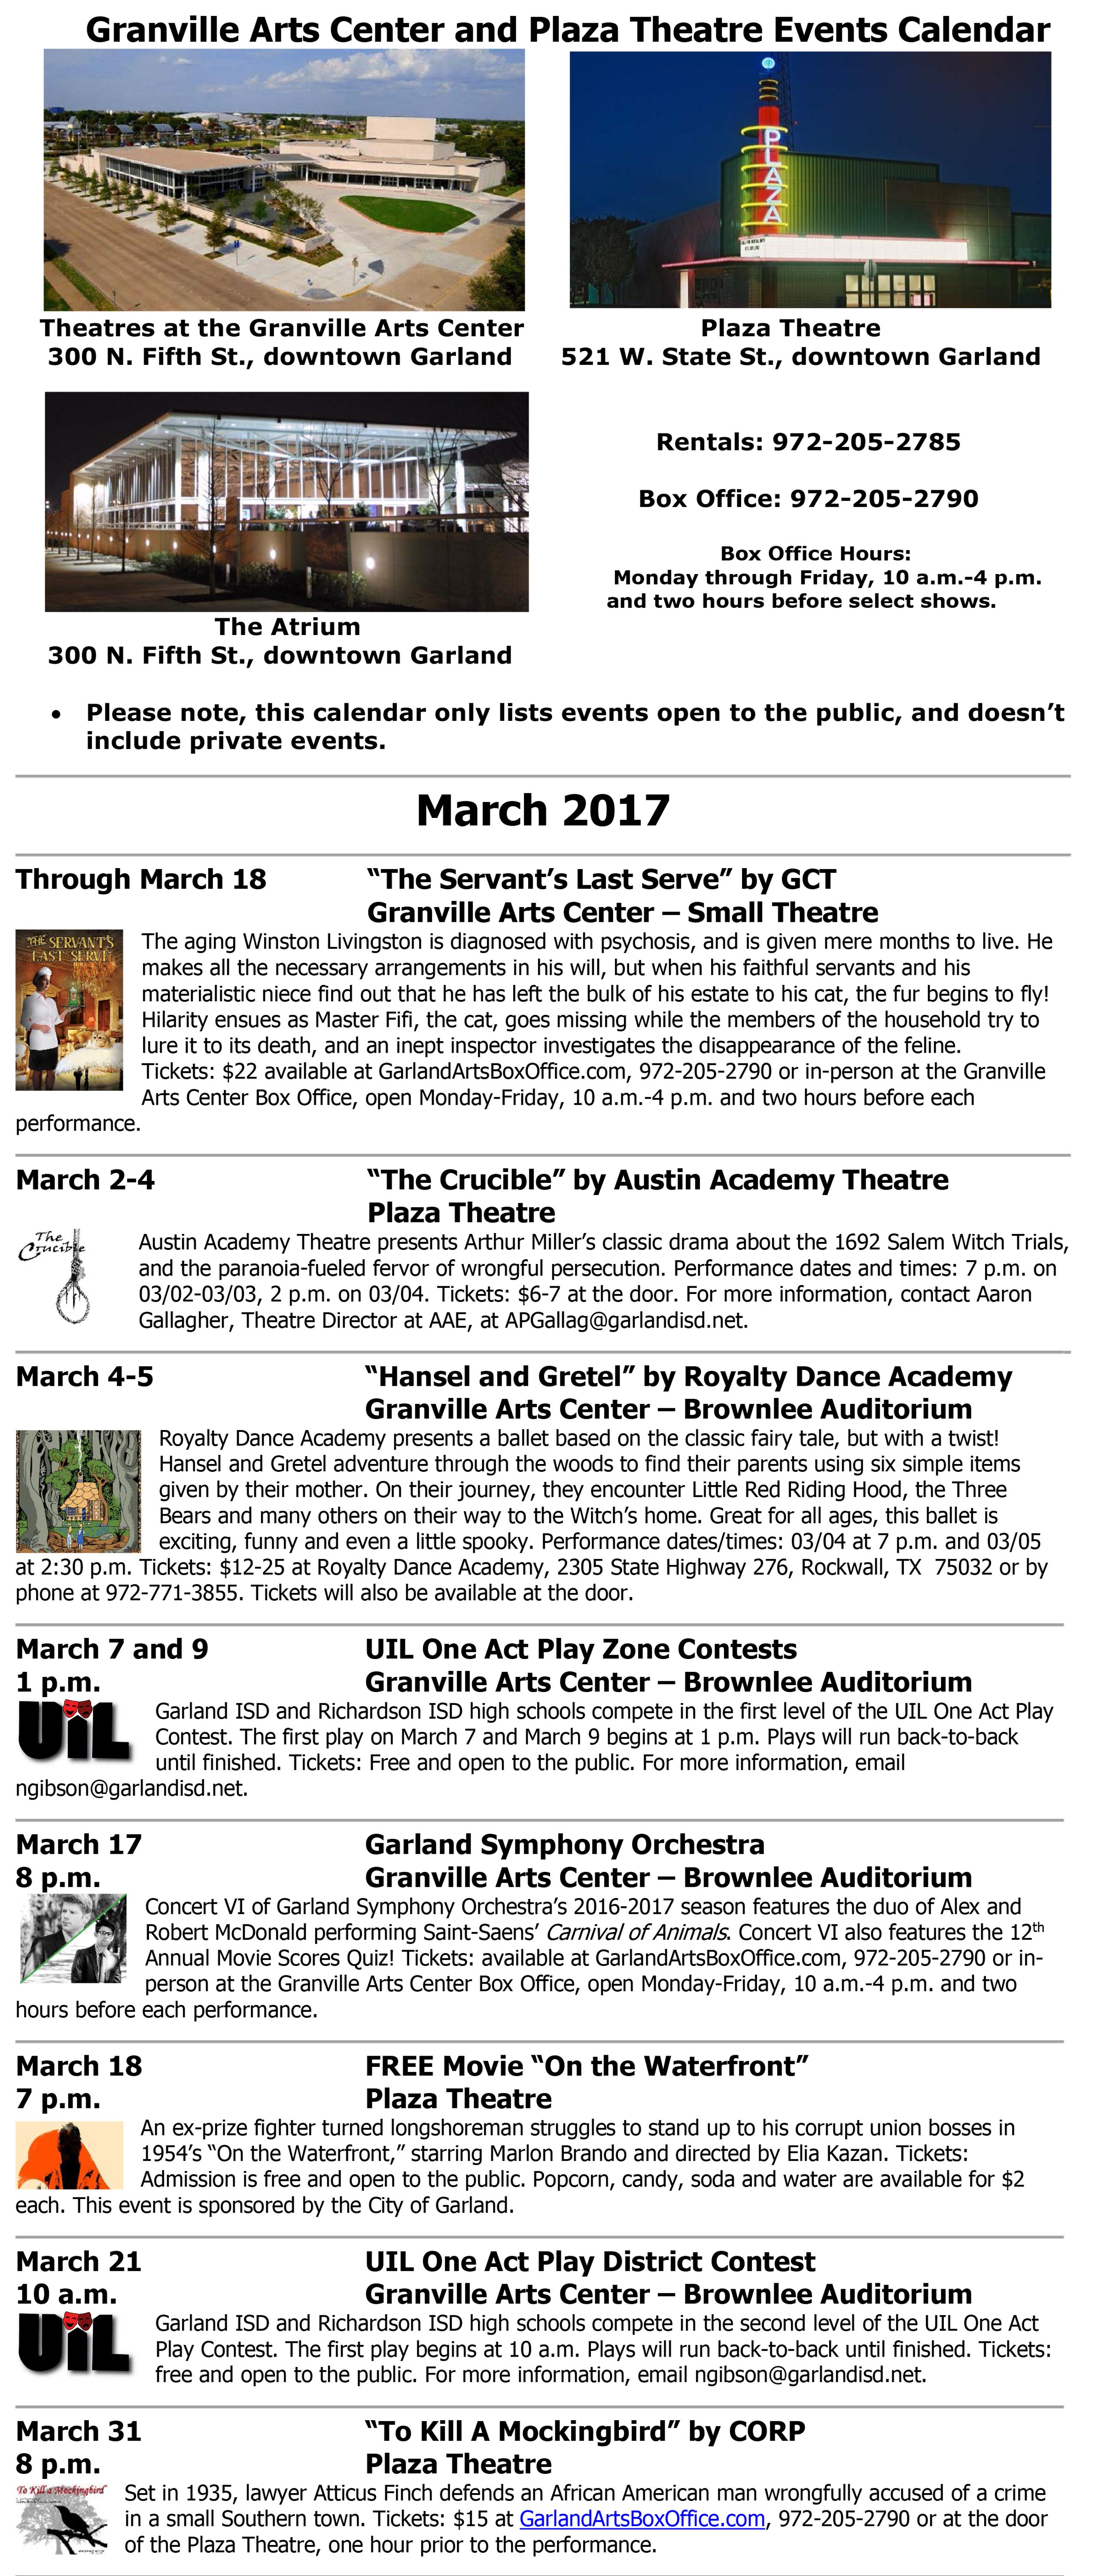 events at the granville arts center and plaza theatre in events at the granville arts center and plaza theatre in downtown garland